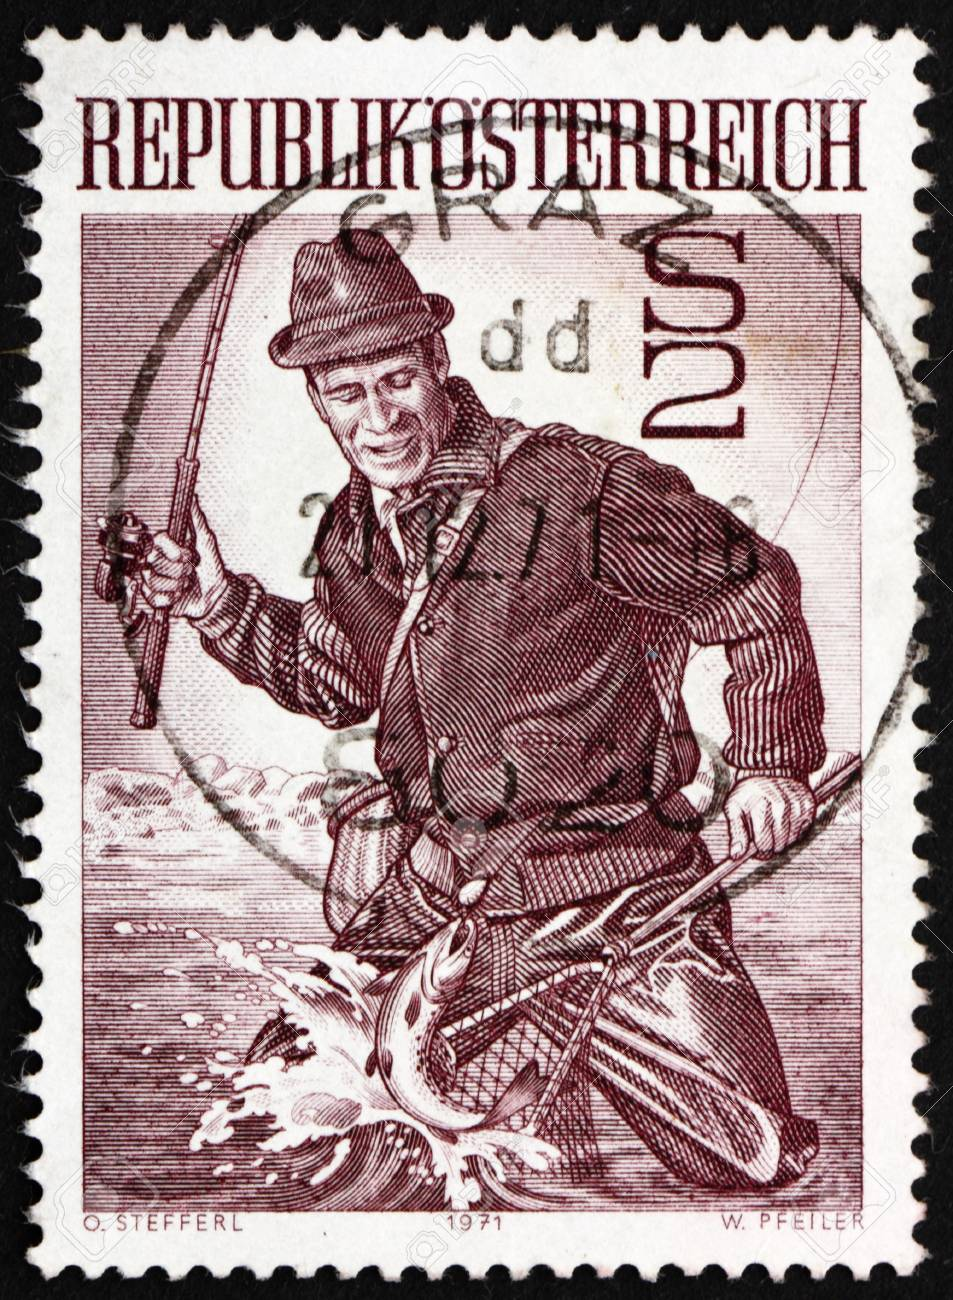 AUSTRIA - CIRCA 1971: a stamp printed in the Austria shows Trout Fisherman, circa 1971 Stock Photo - 14542821